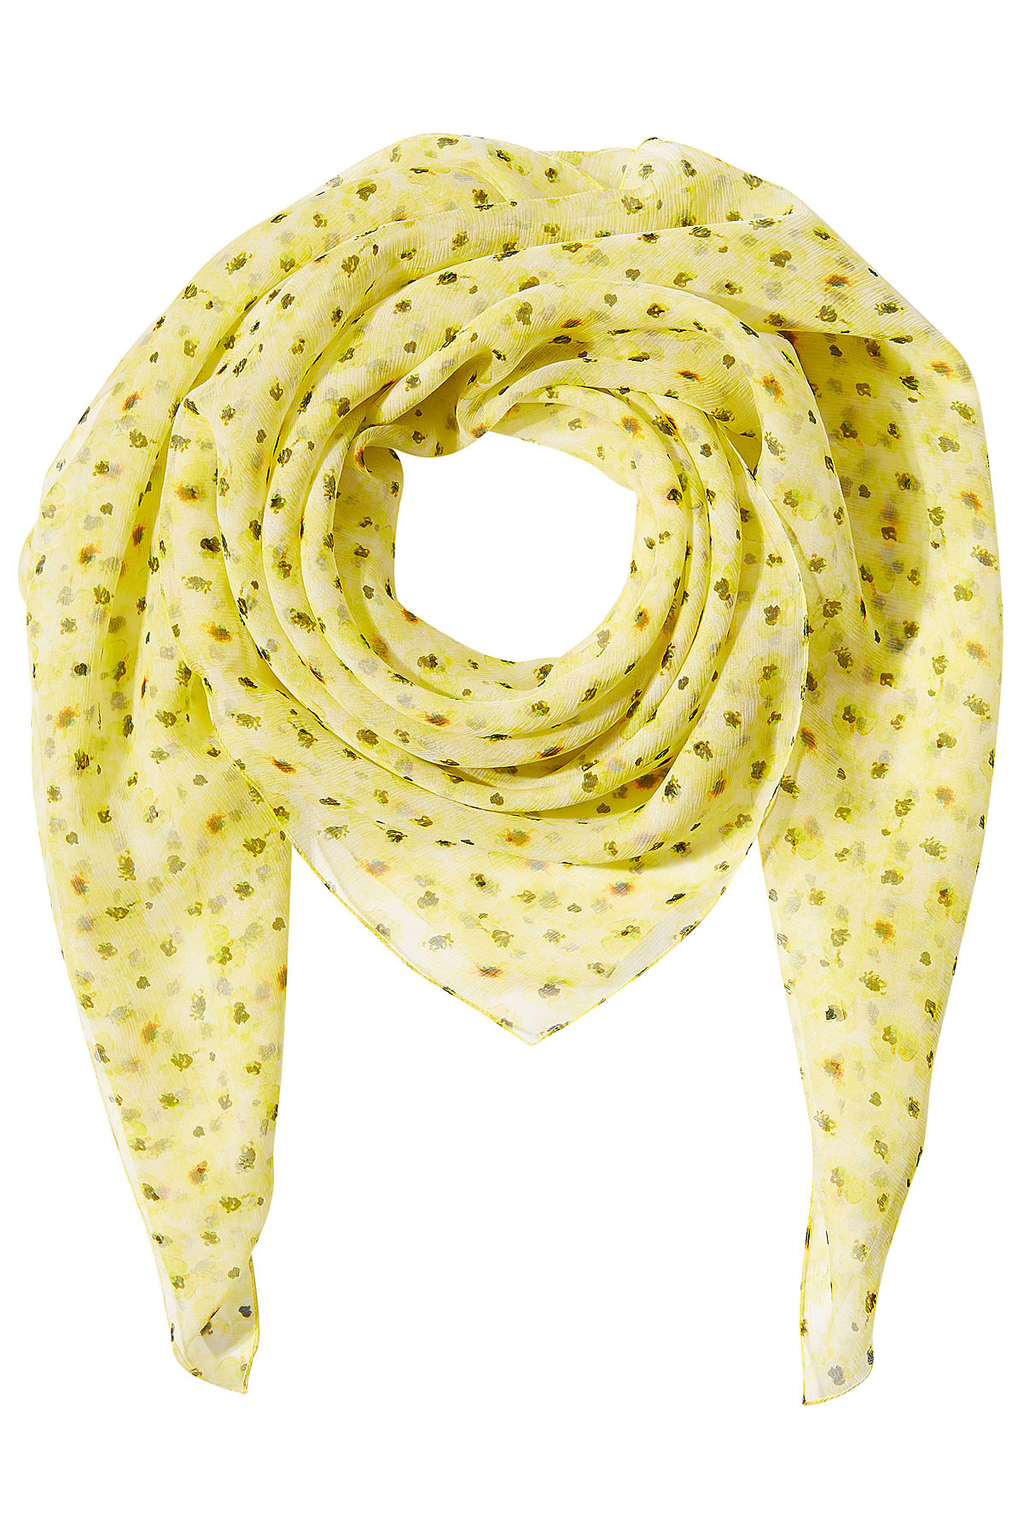 Printed Silk Scarf - predominant colour: yellow; occasions: casual; type of pattern: heavy; style: square; size: large; material: silk; pattern: patterned/print; season: s/s 2016; wardrobe: highlight